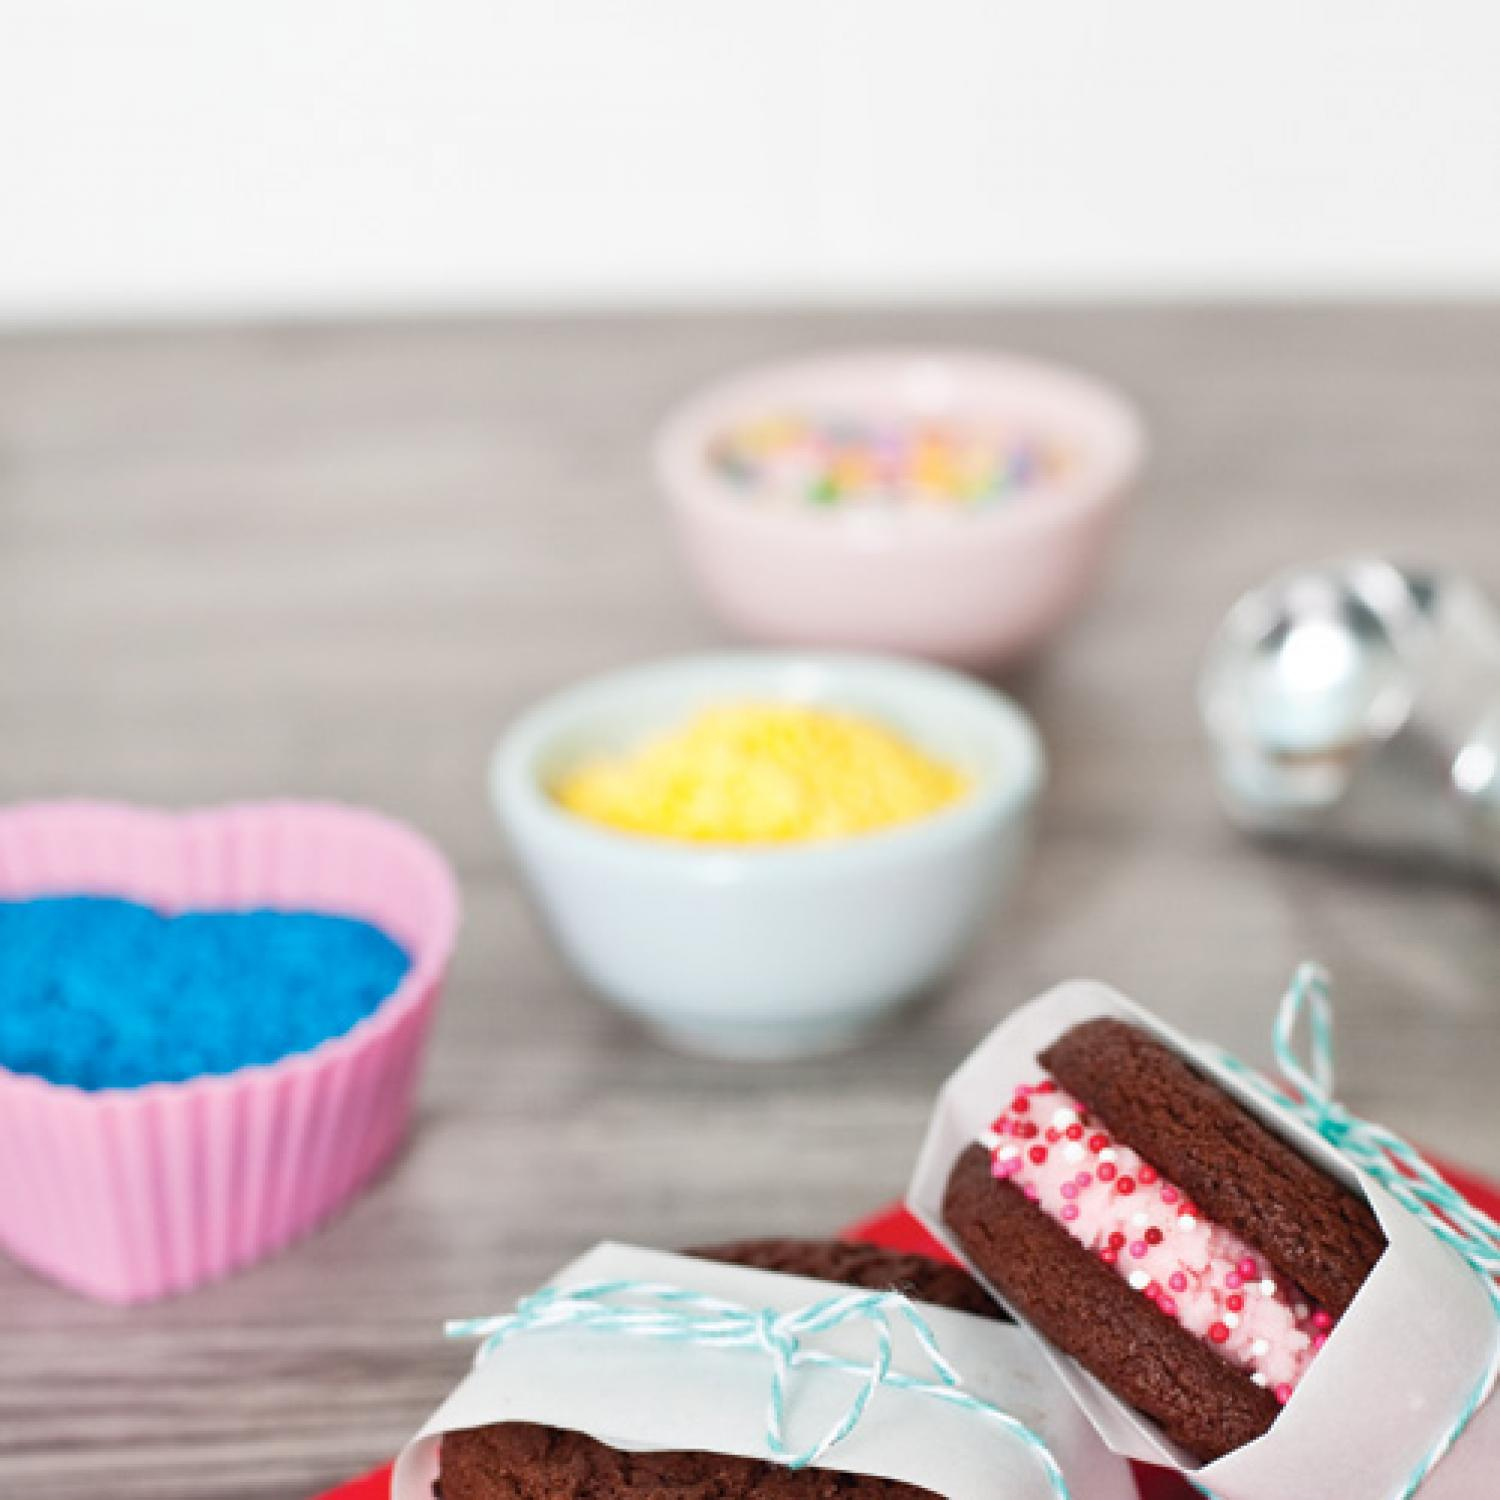 8 sweet valentine 39 s day ideas for kids parenting for Arts and crafts ideas for couples